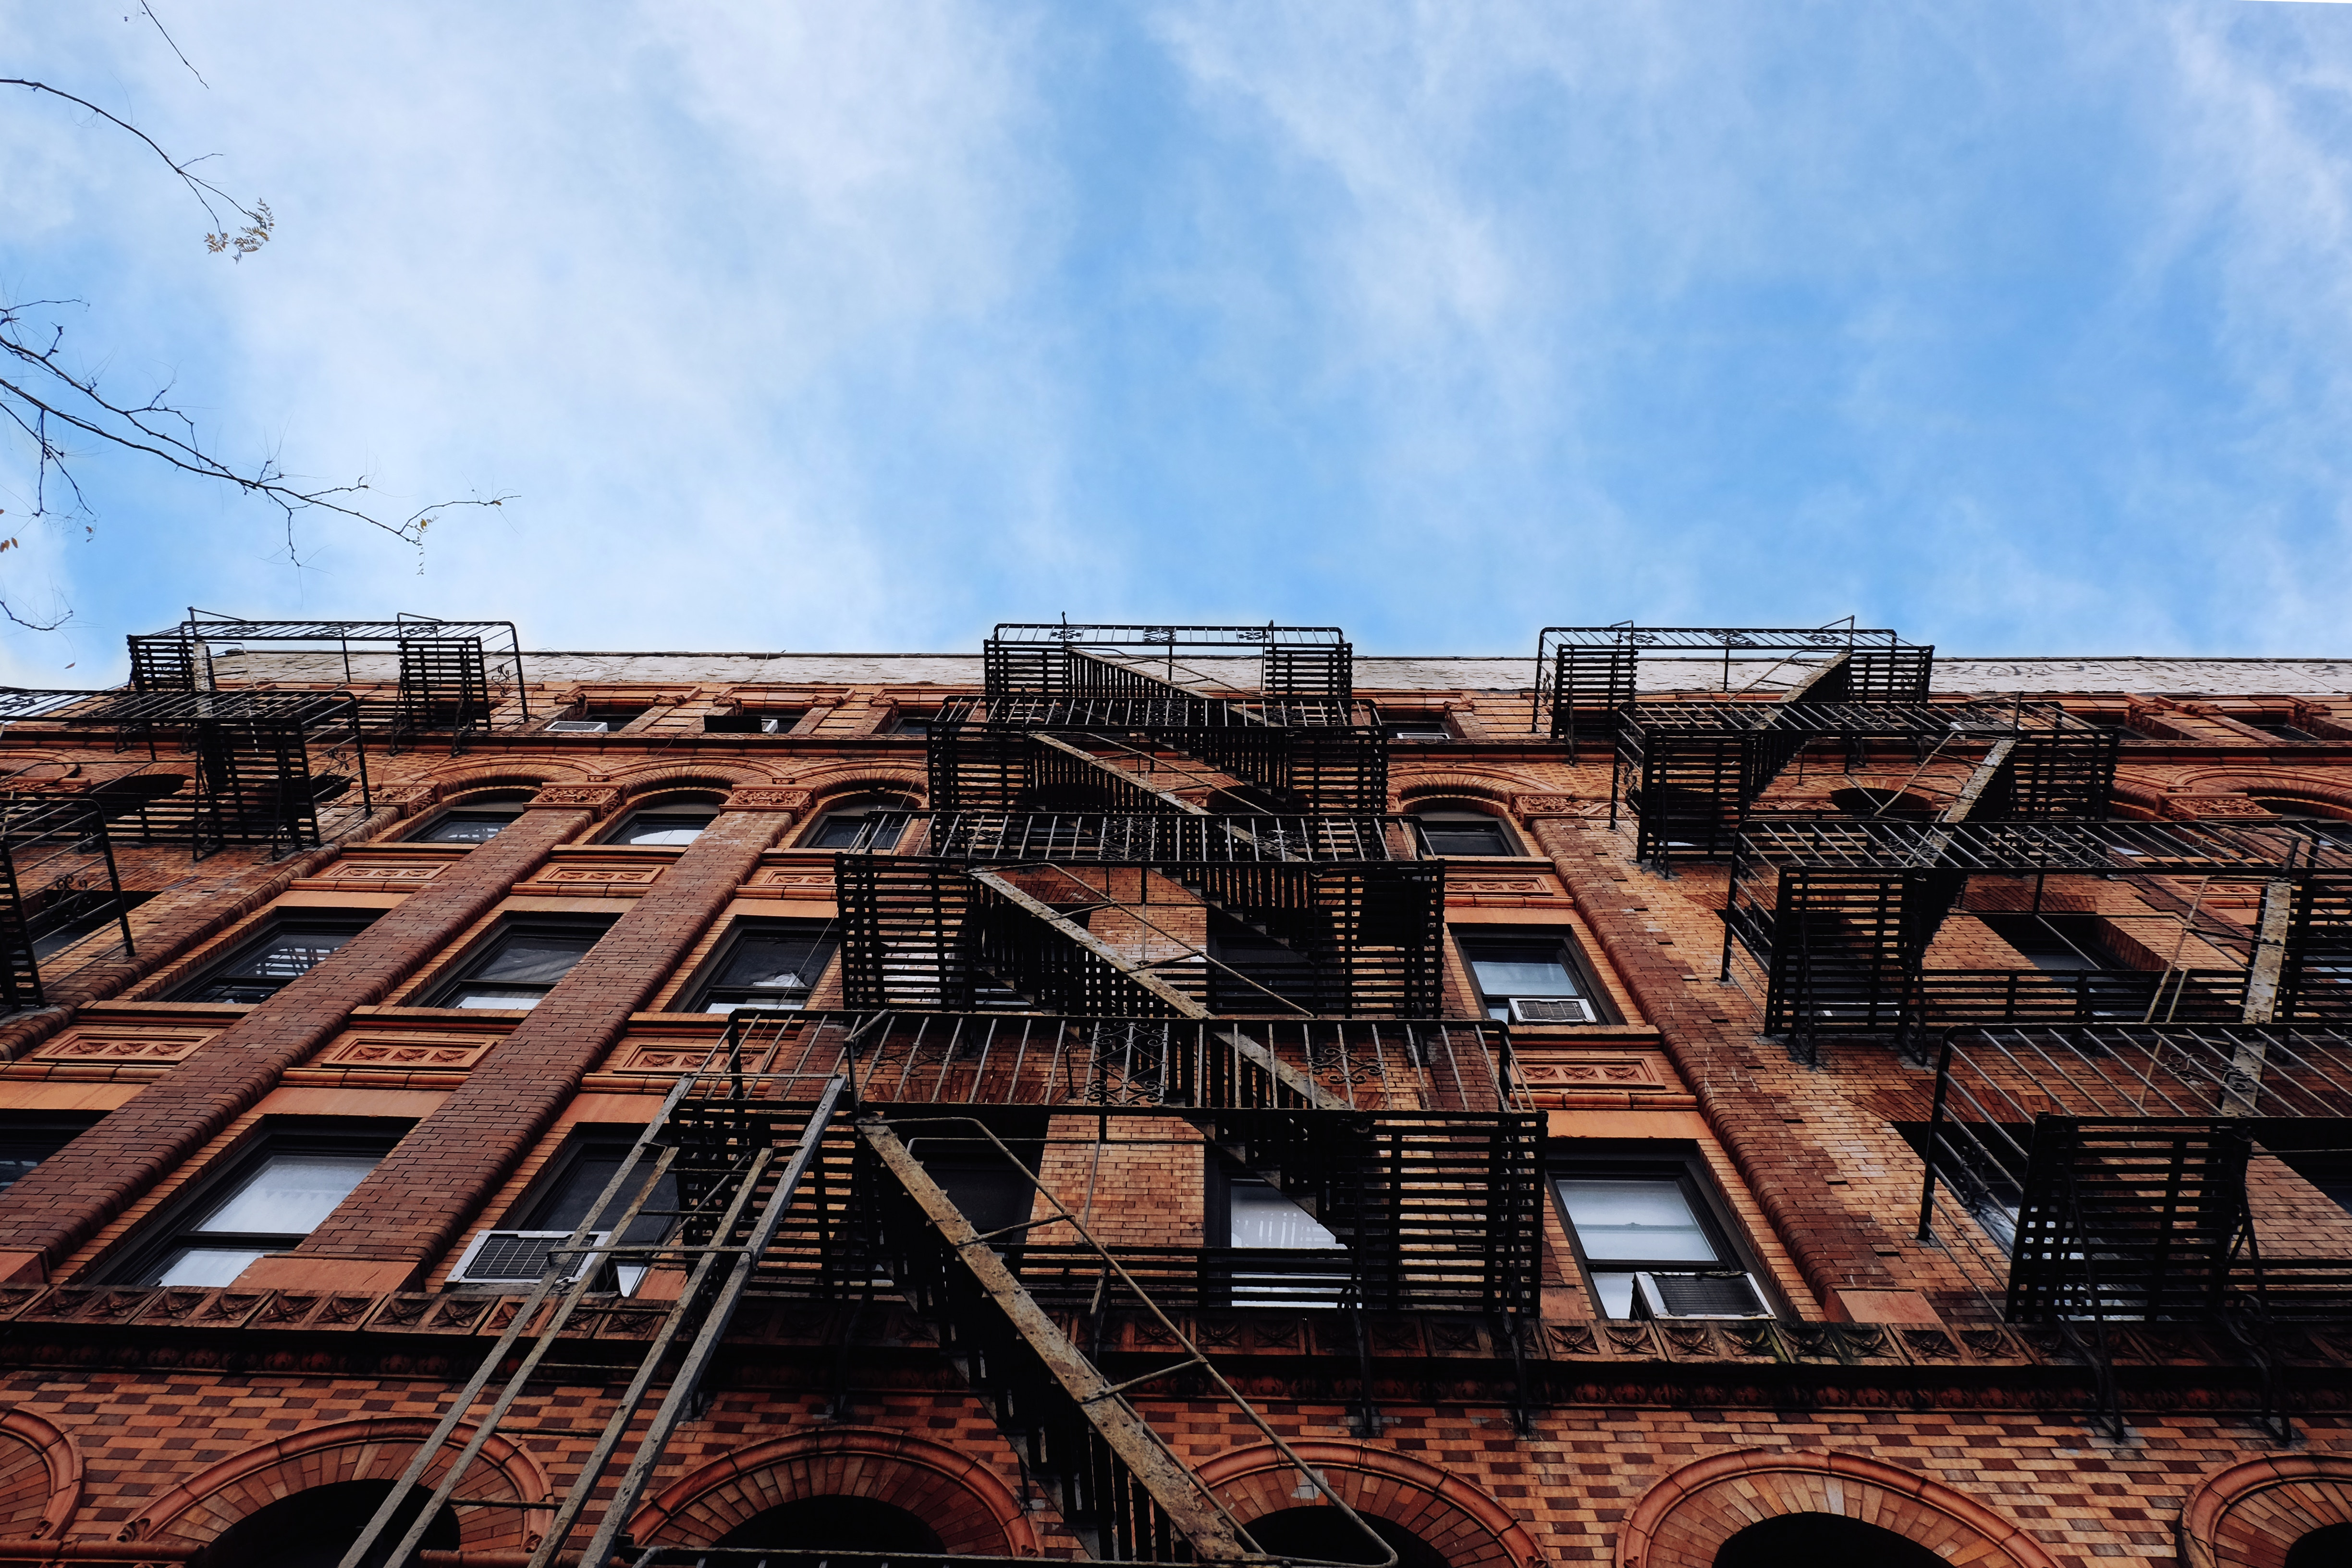 Condo vs. Apartment: Which is Right for You?